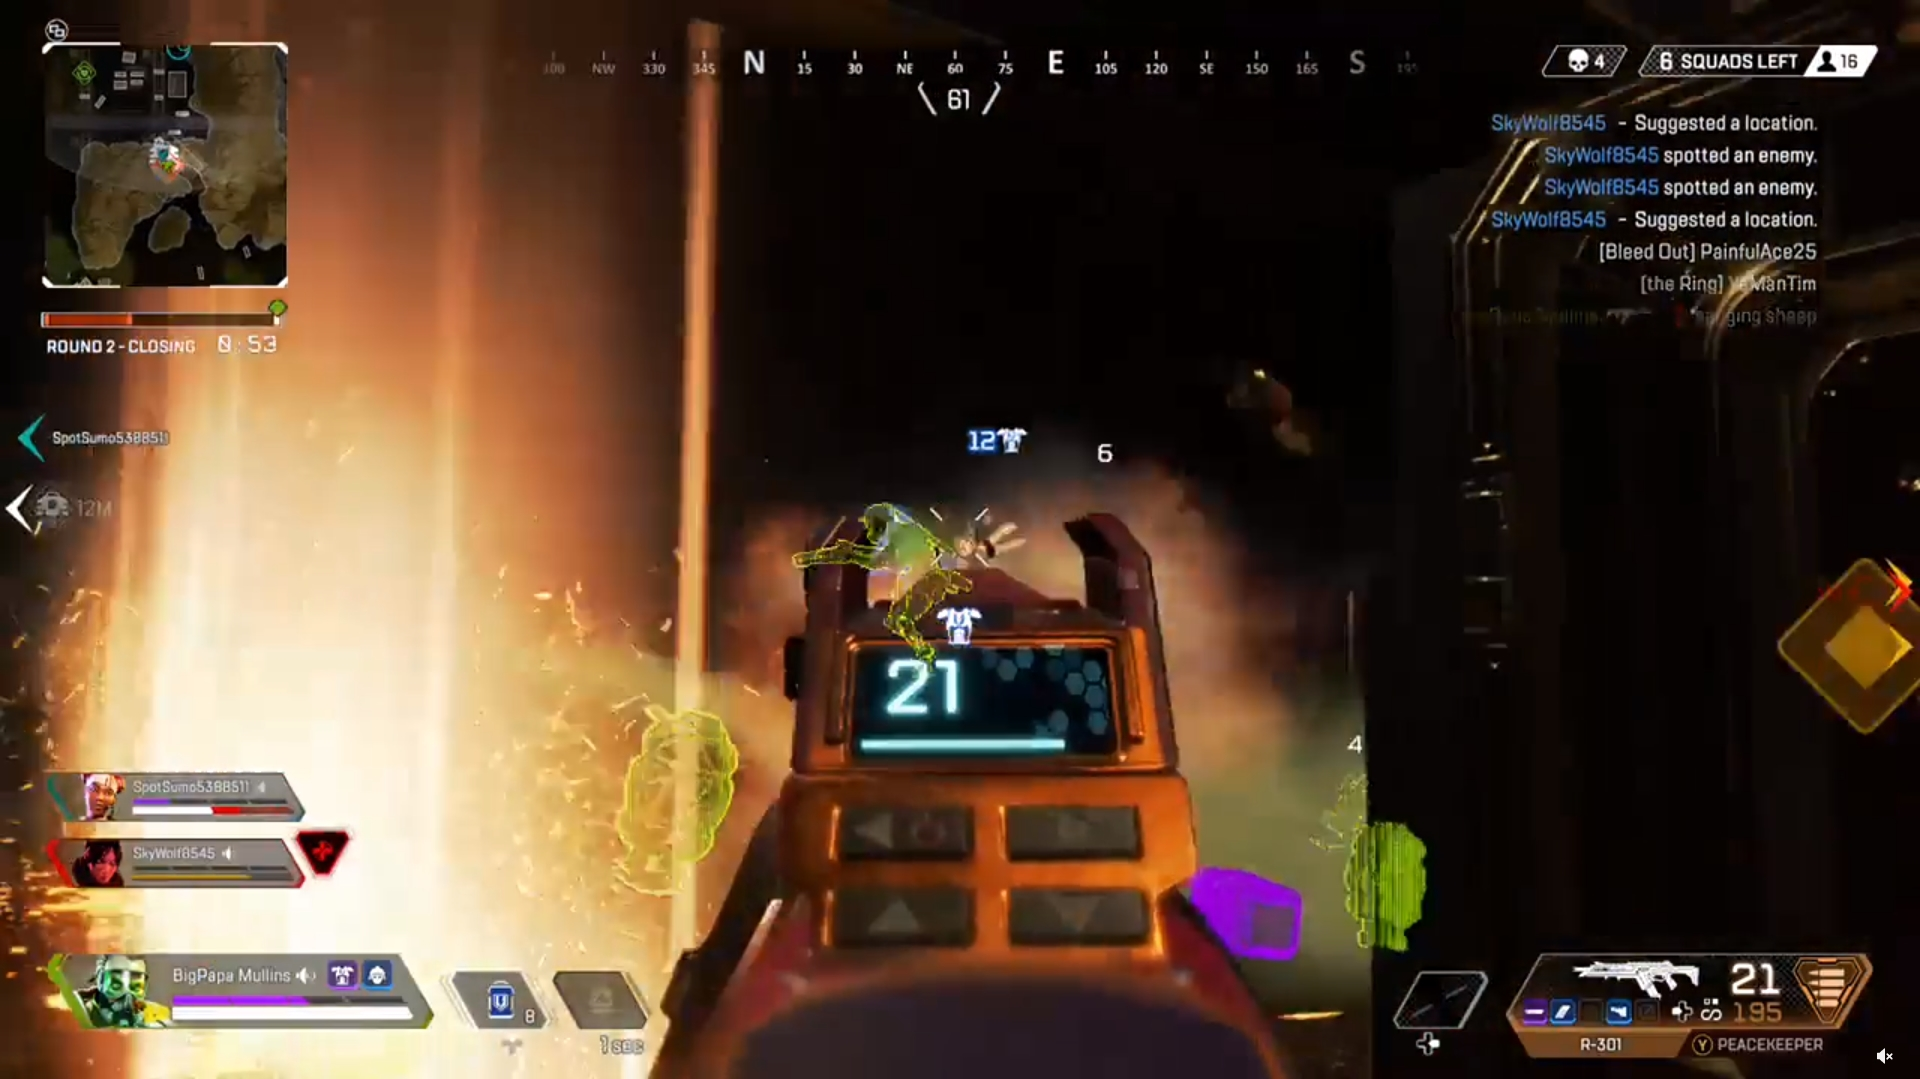 Octane trapped by Thermites and Caustic Nox gas in Apex Legends